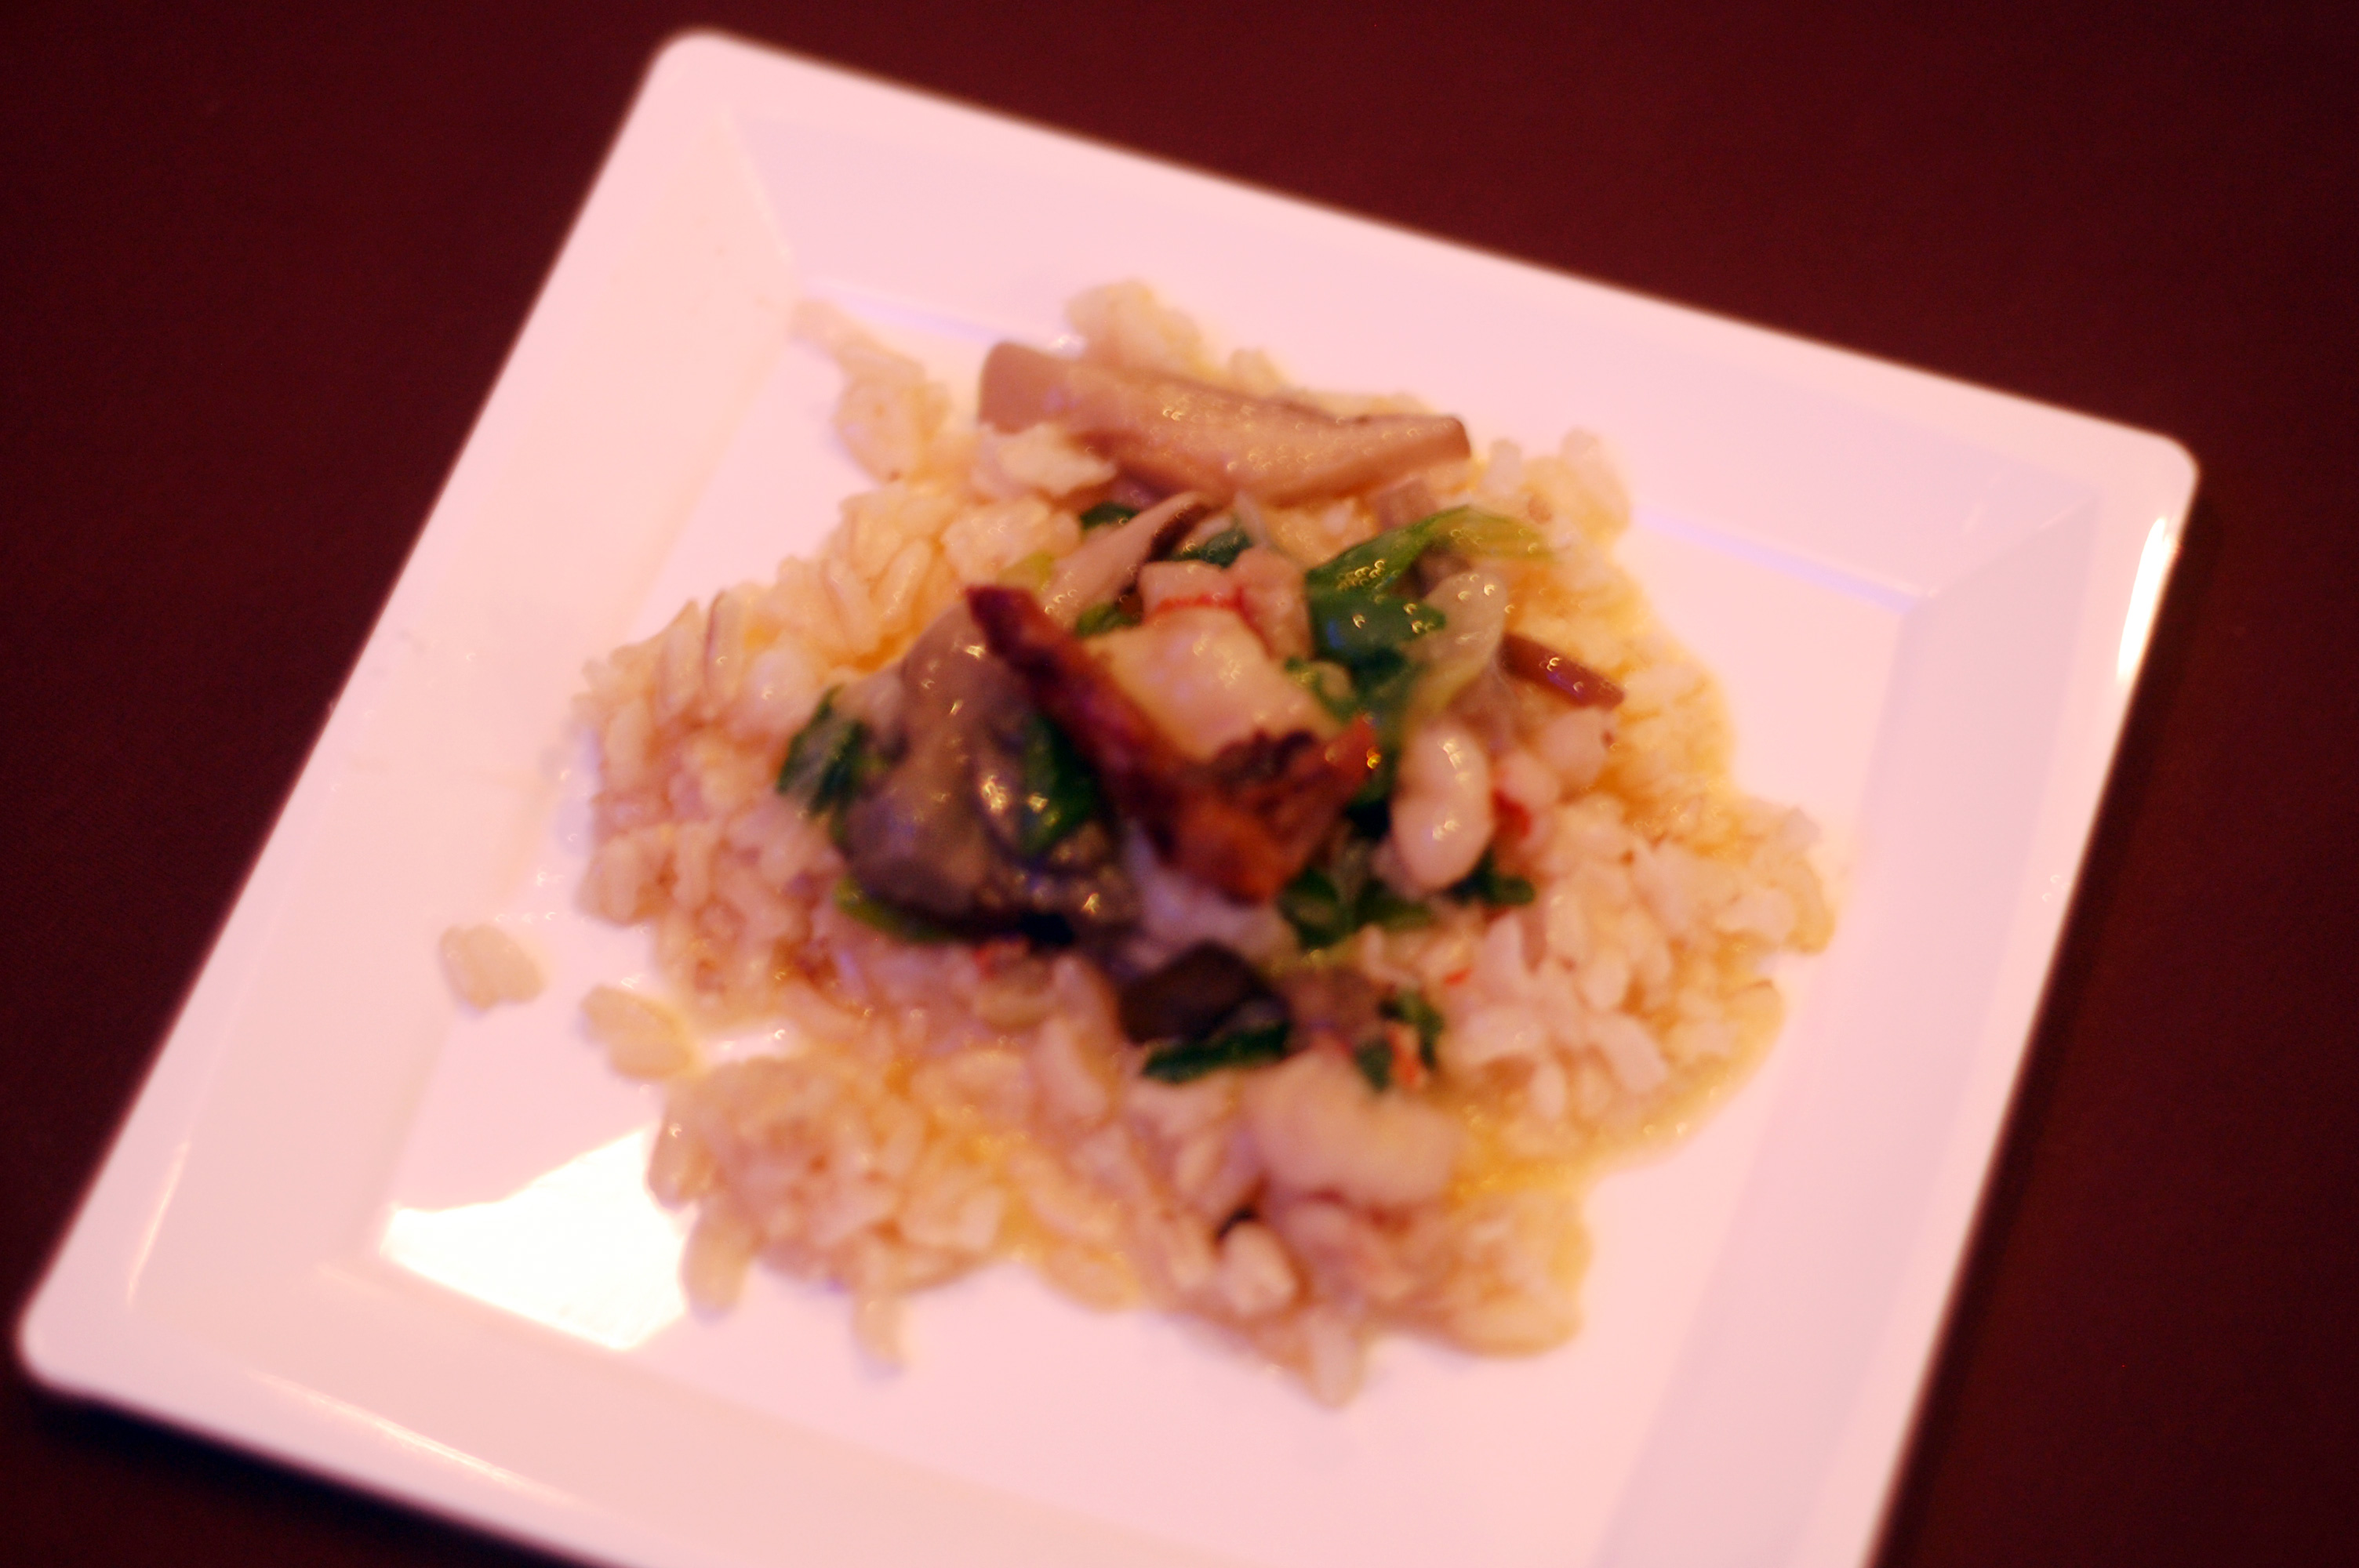 Florida Rock Shrimp With Buttered Rice, Duck Cracklings